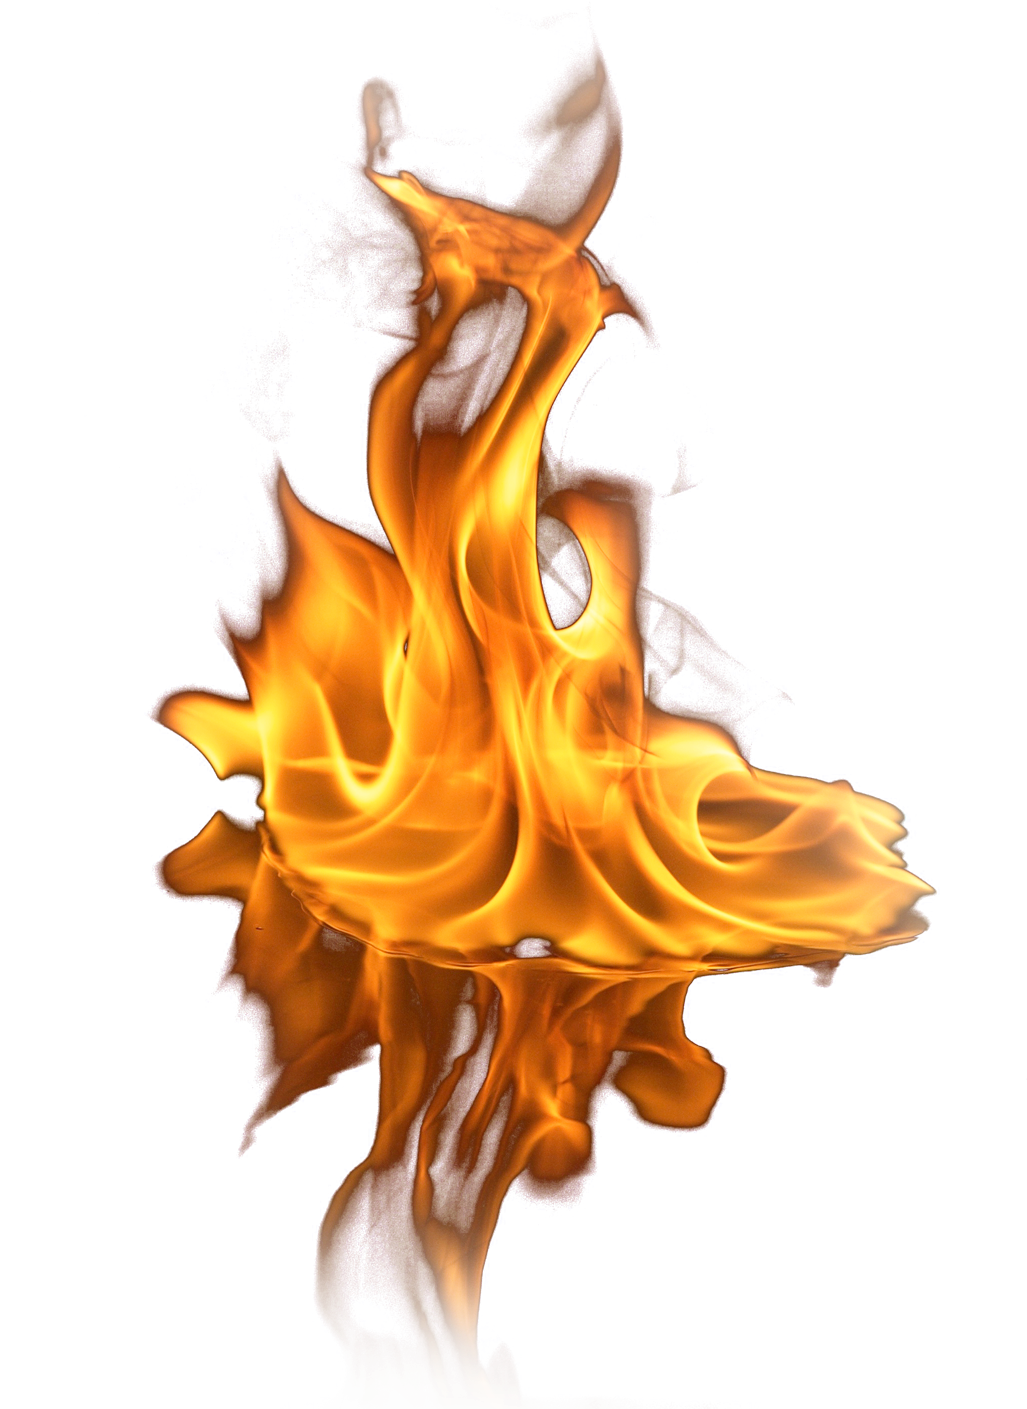 HD Fire Flame Download Png Image.